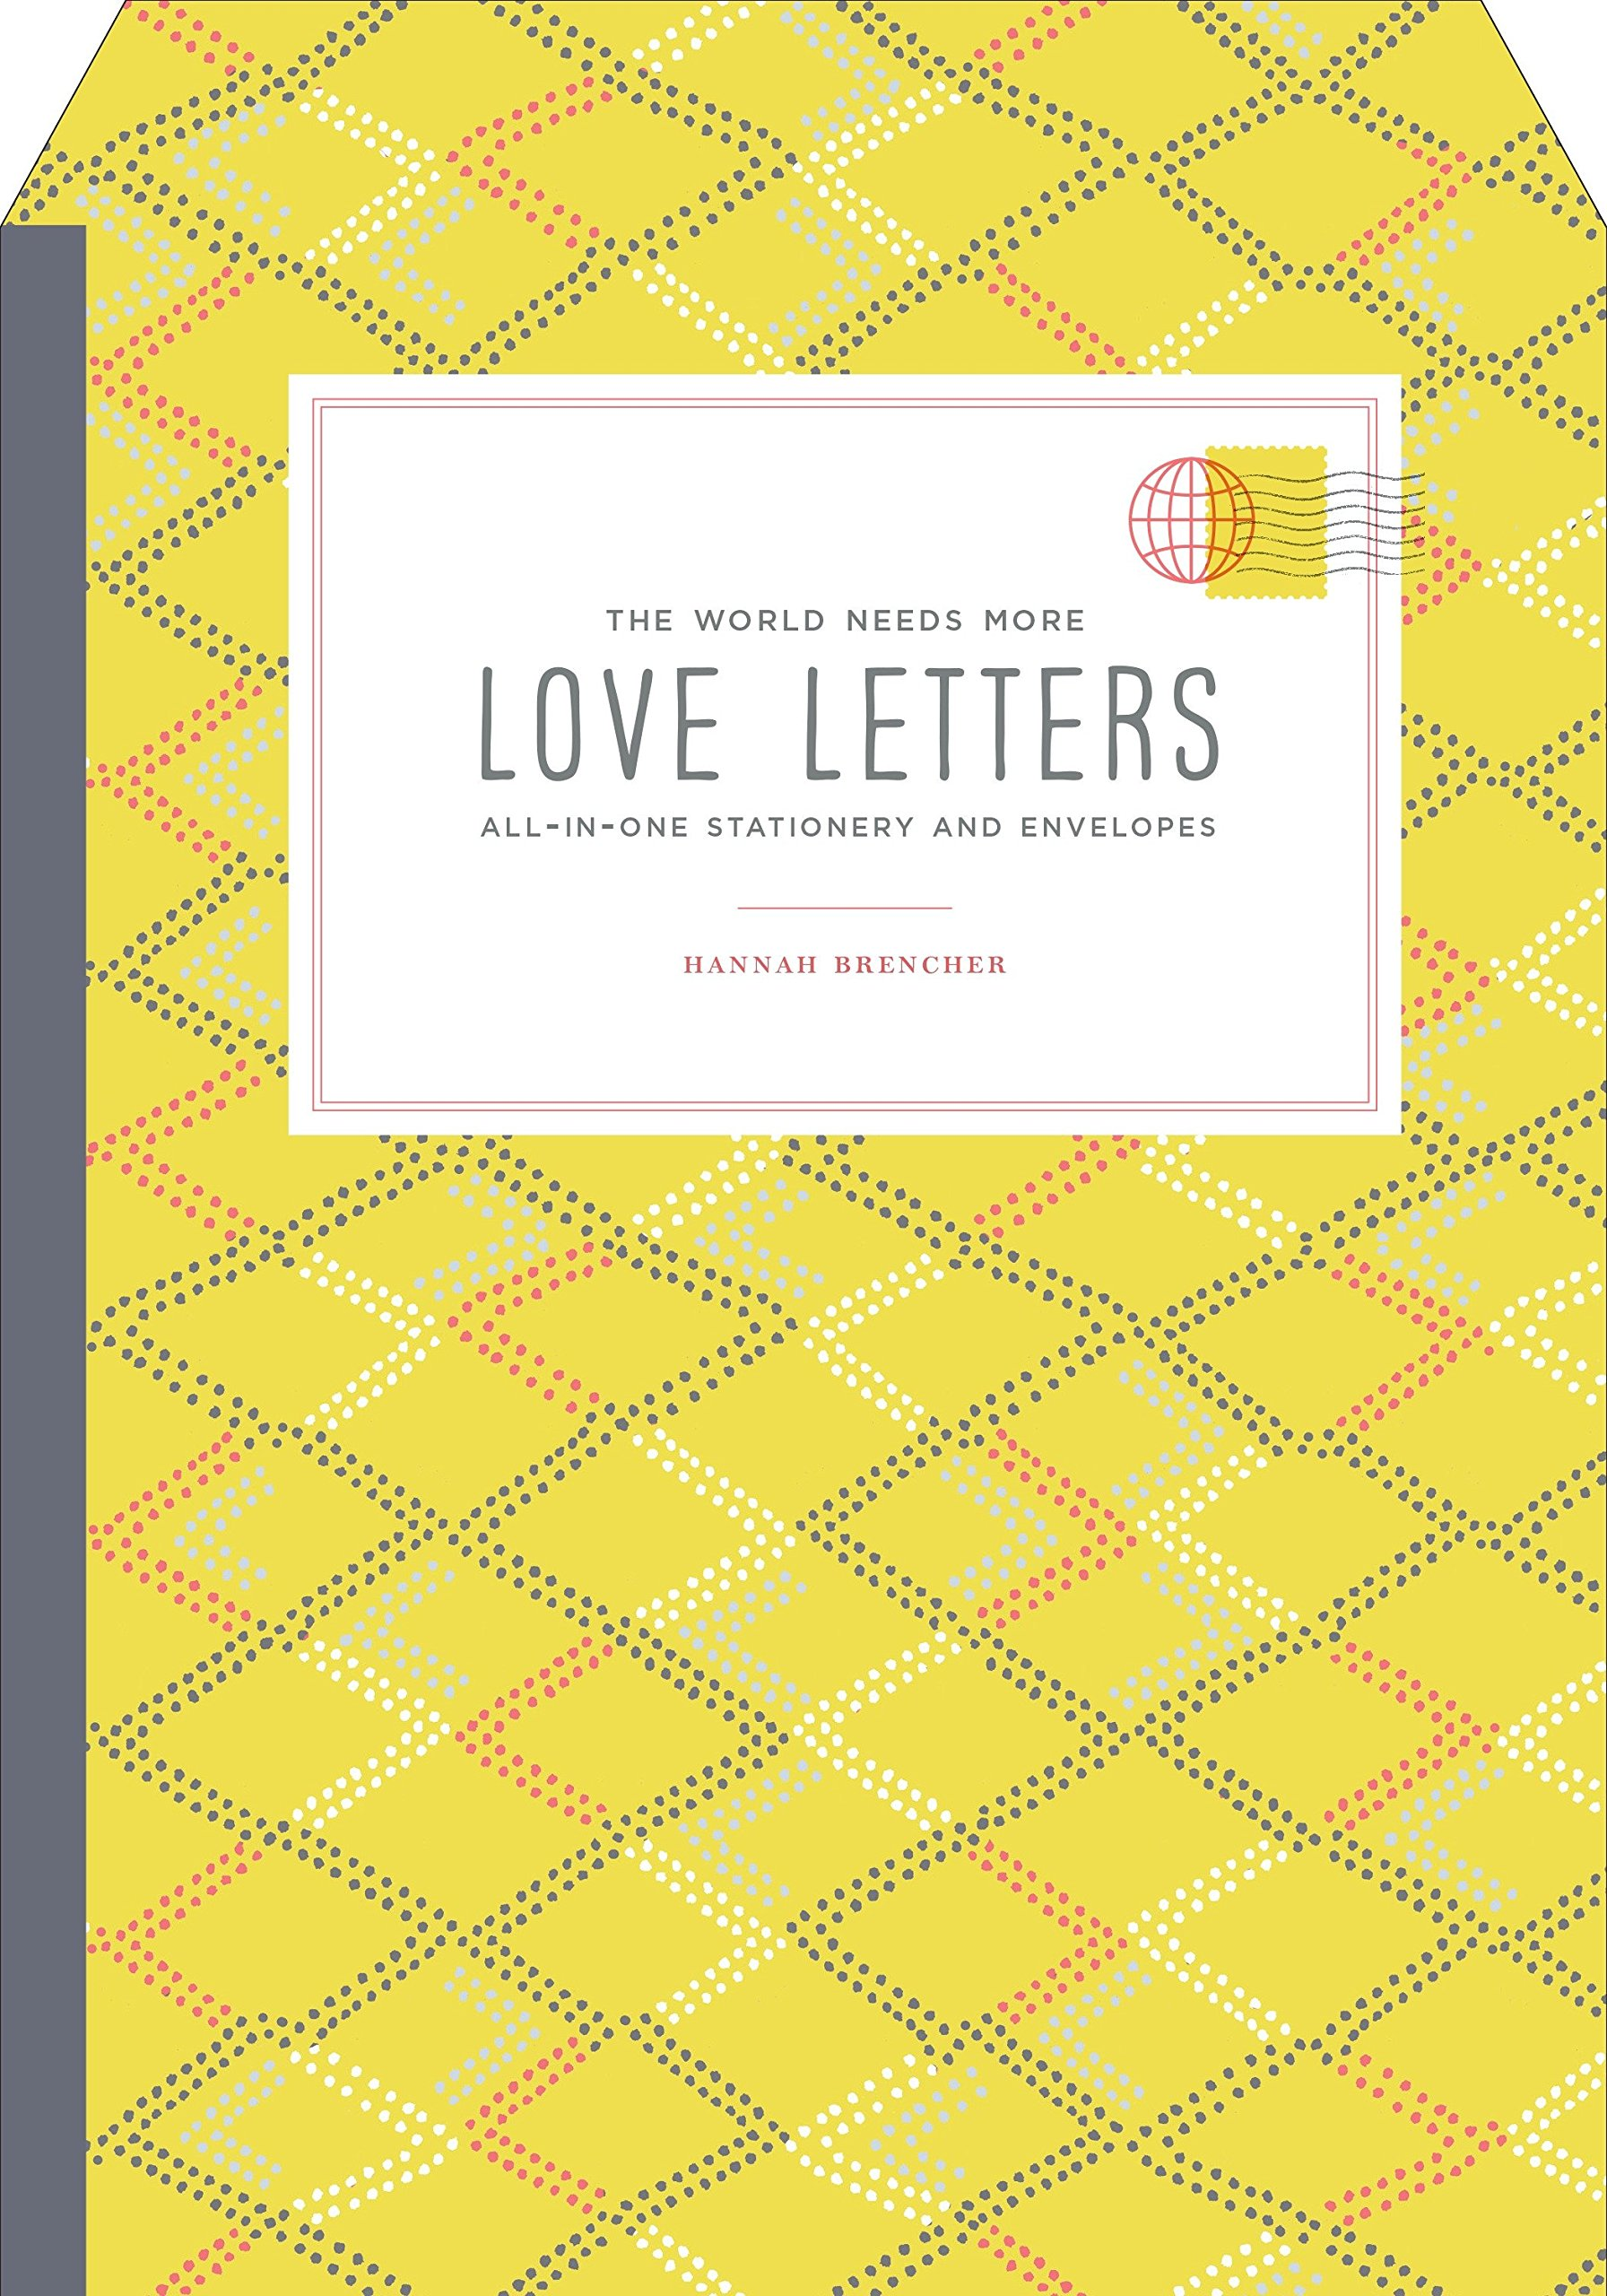 the world needs more love letters all in one stationery and envelopes hannah brencher 9780804185981 amazoncom books